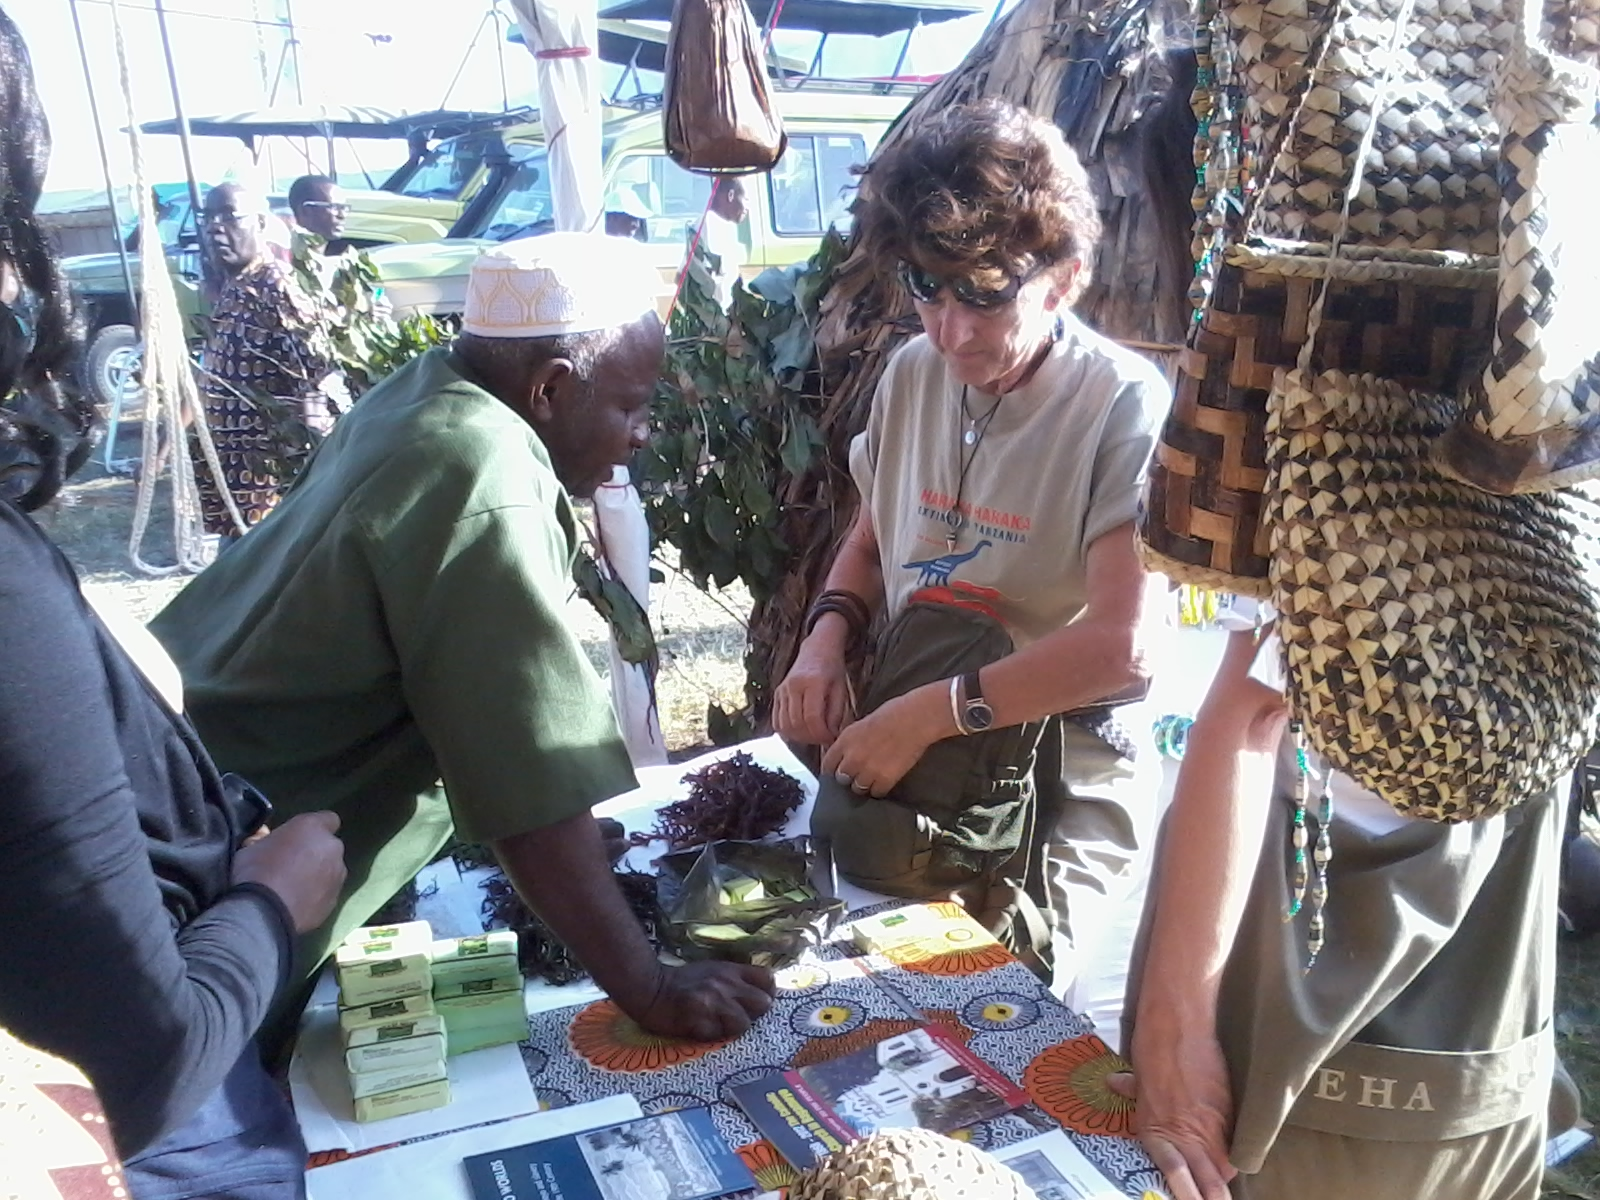 seaweed farmer explaining something to one of the guest at the exihibition in Arusha.jpg